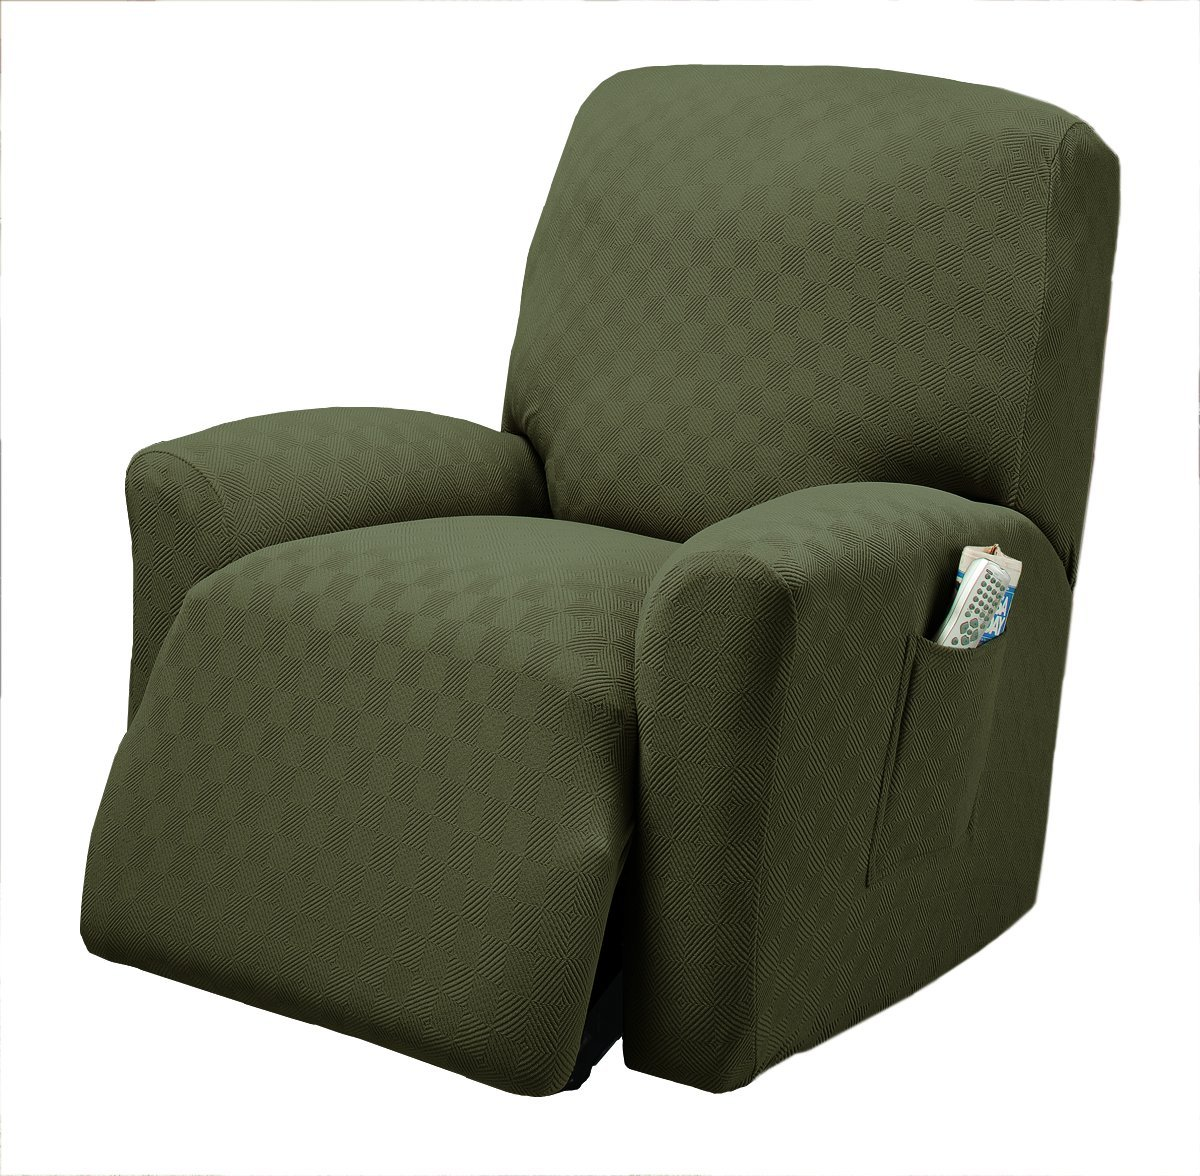 Amazon.com Stretch Sensations Newport Recliner Stretch Slipcover Sage Home u0026 Kitchen  sc 1 st  Amazon.com & Amazon.com: Stretch Sensations Newport Recliner Stretch Slipcover ... islam-shia.org